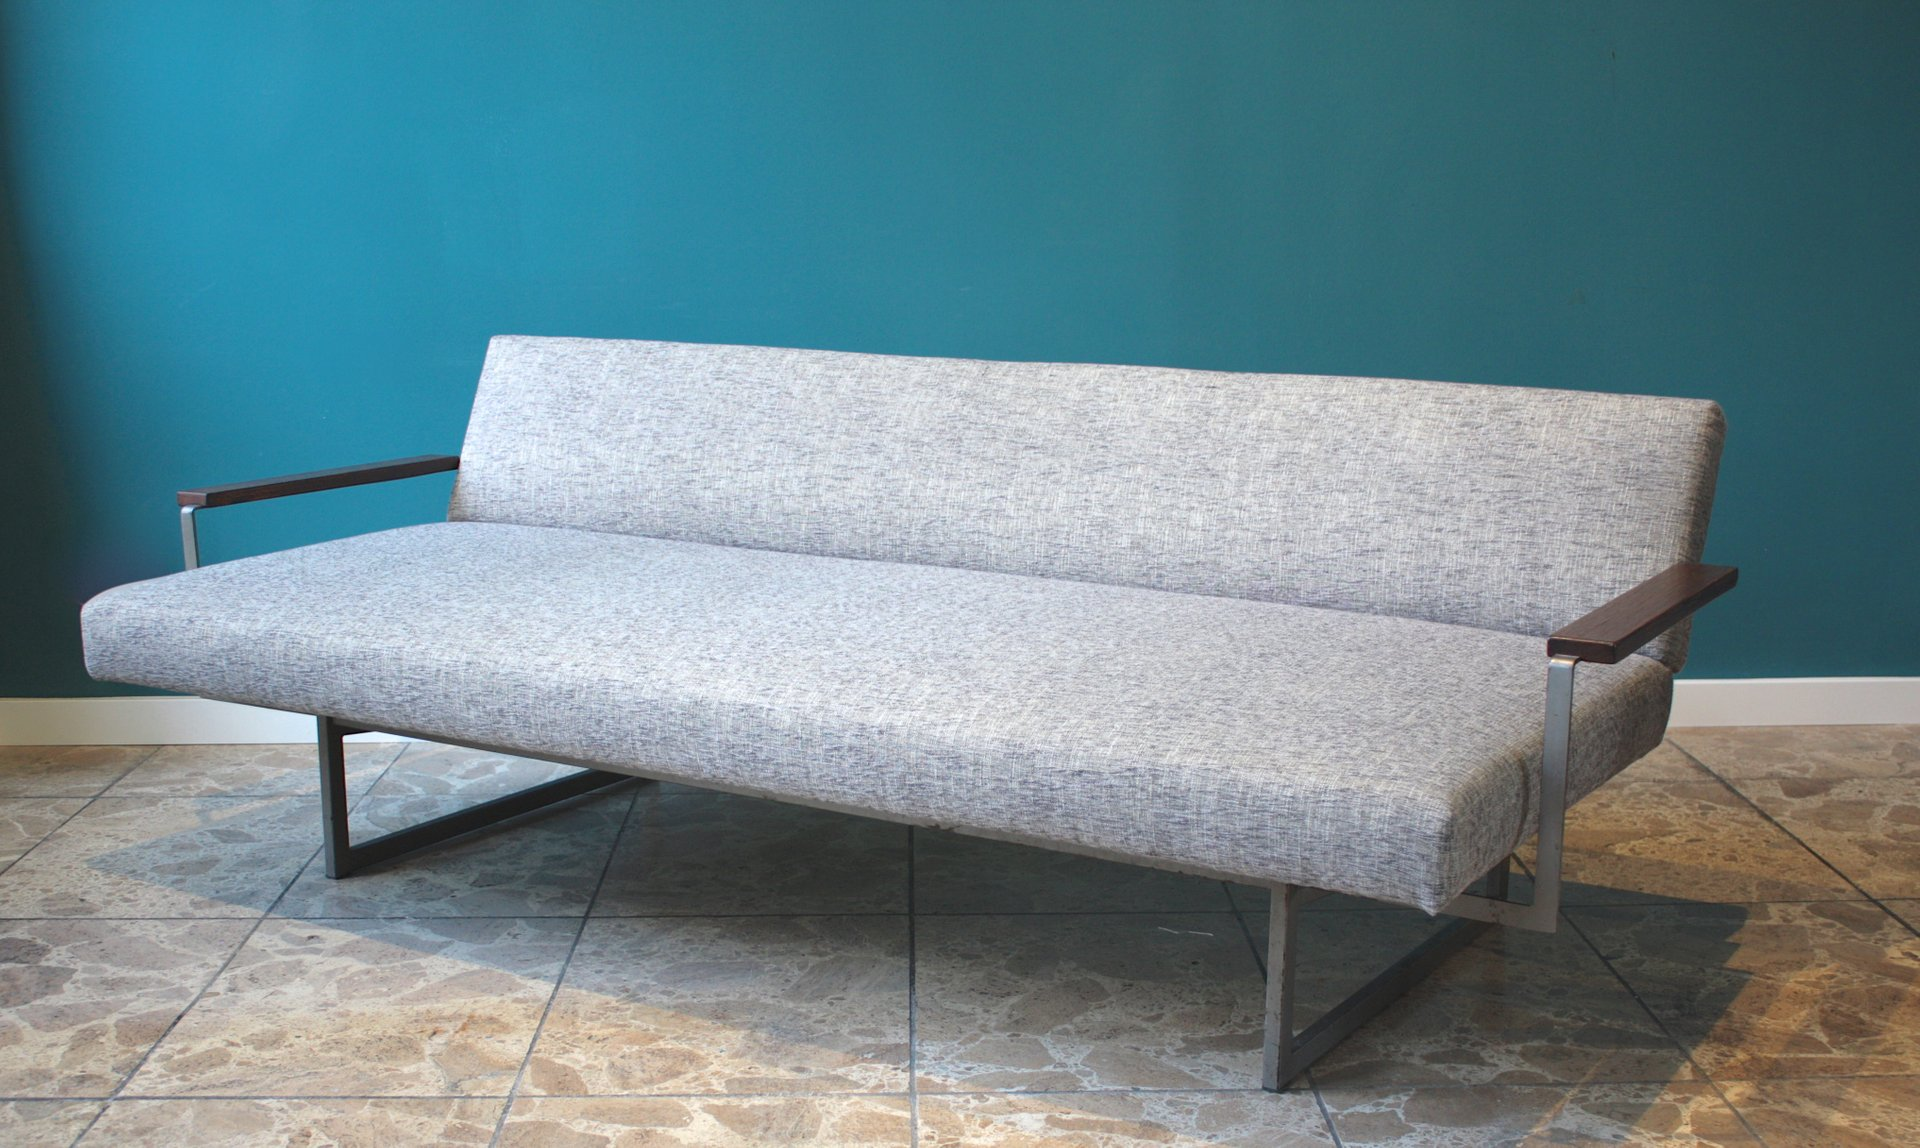 Affordable Amazing Interesting Previous With Retro Schlafsofa With  Kchensofa Grau With Kchensofa Grau With Kchensofa Grau